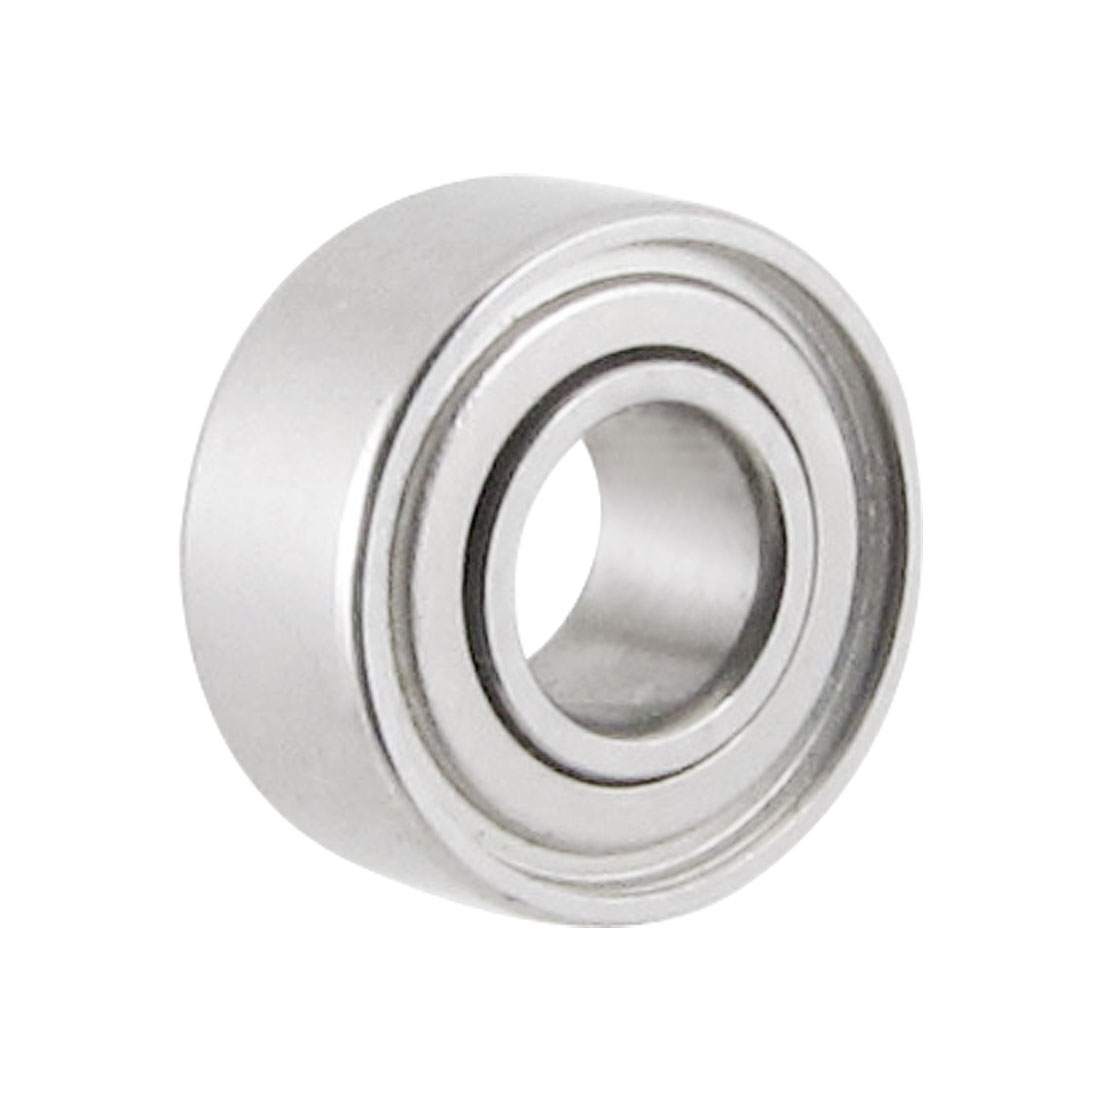 3mm-x-7mm-x-3mm-Shields-Radial-Miniature-Deep-Groove-Ball-Bearing